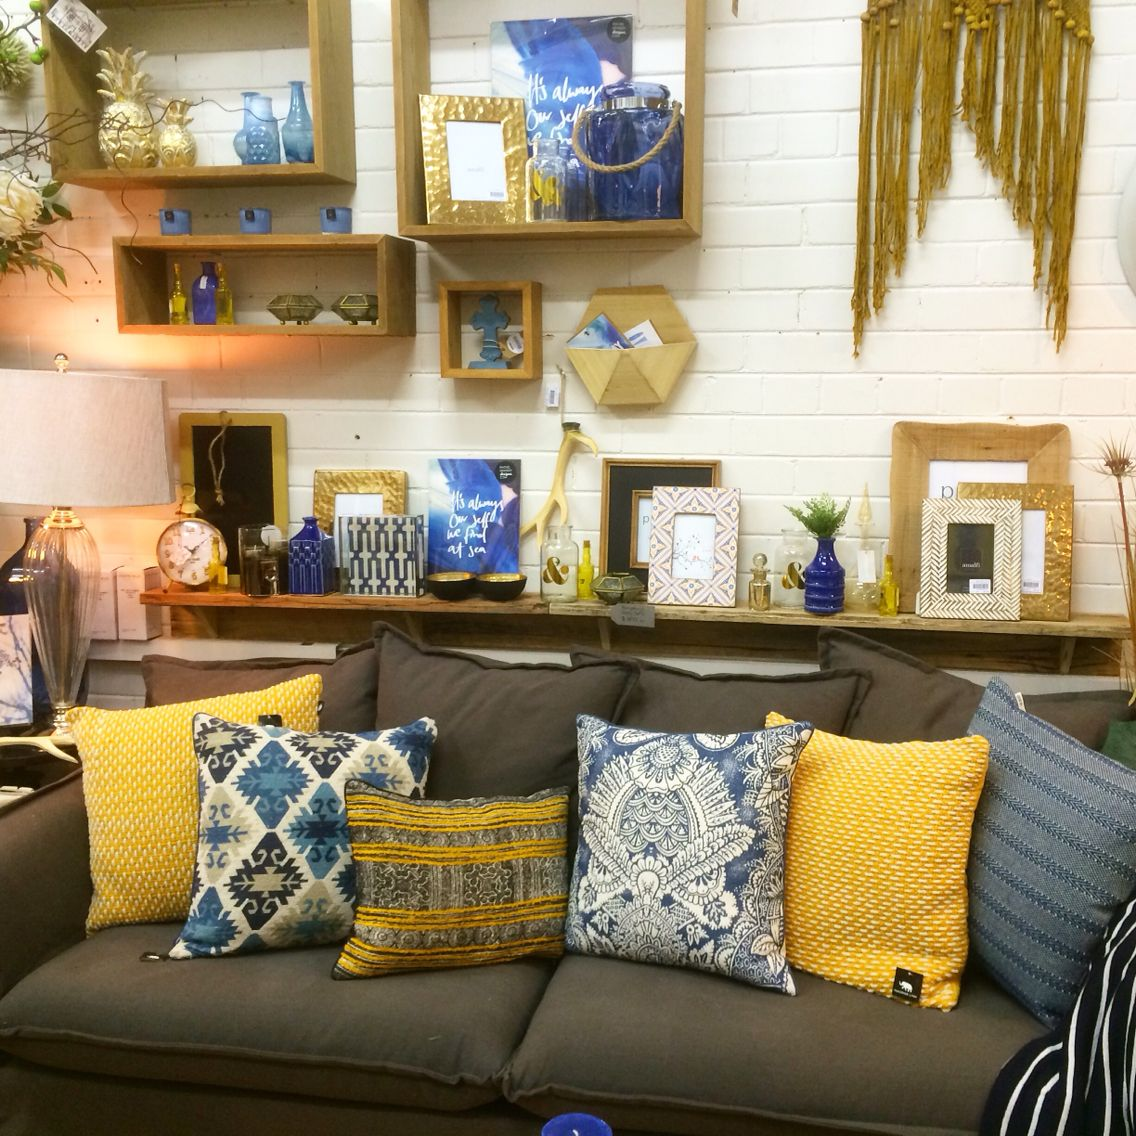 Mustard And Indigo Shop Display. Home Decor And Interiors